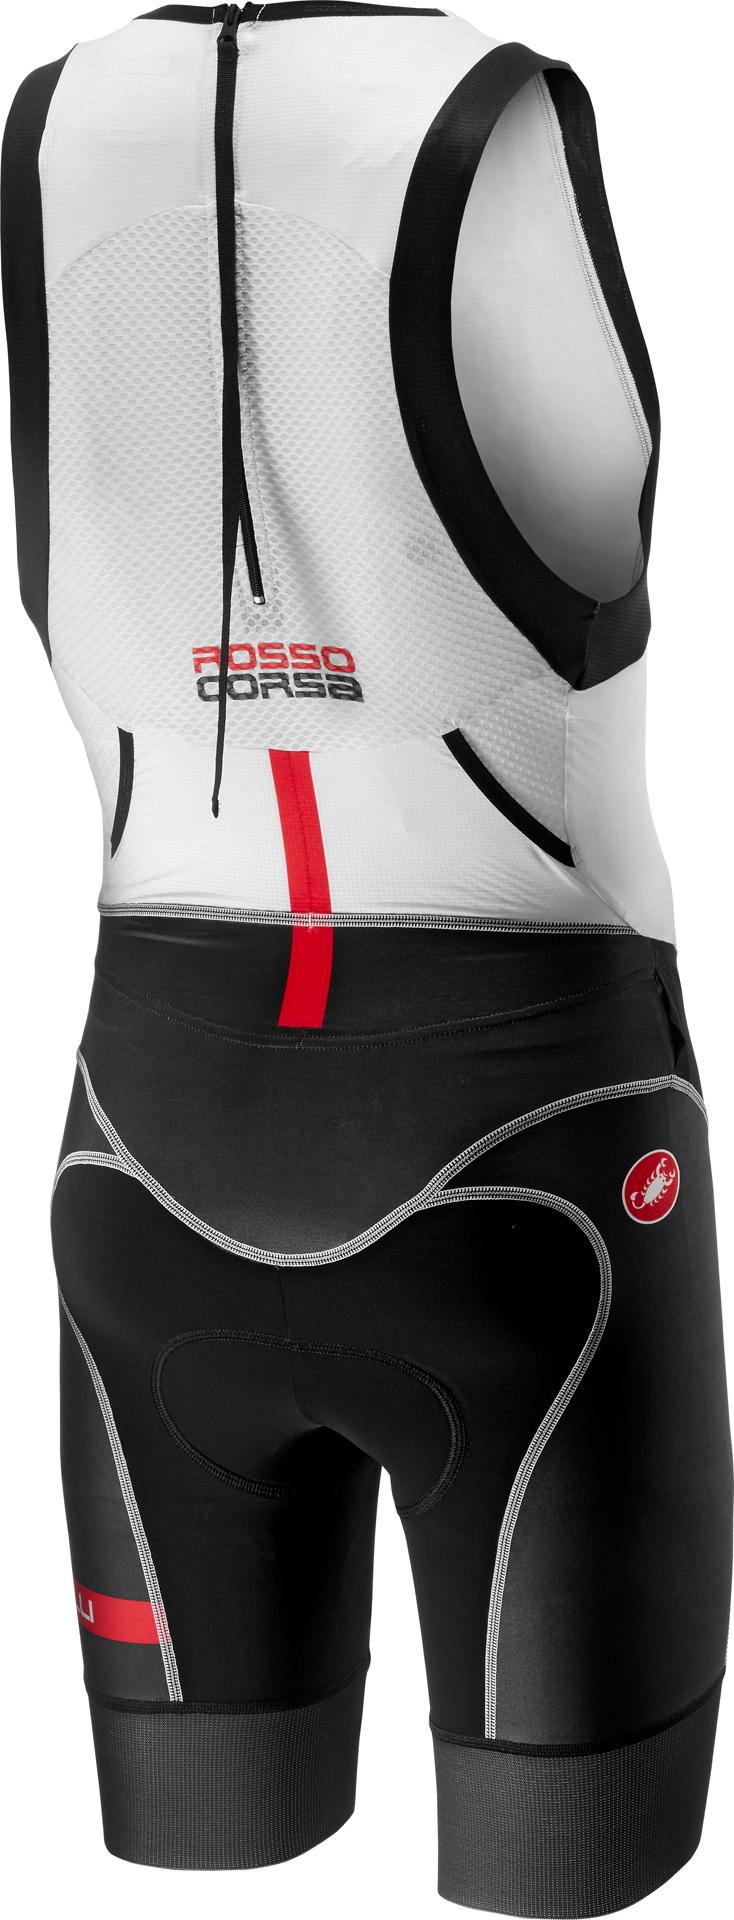 Castelli Triathlon pak Heren Wit Zwart - CA Free Tri Itu Suit-White/Black